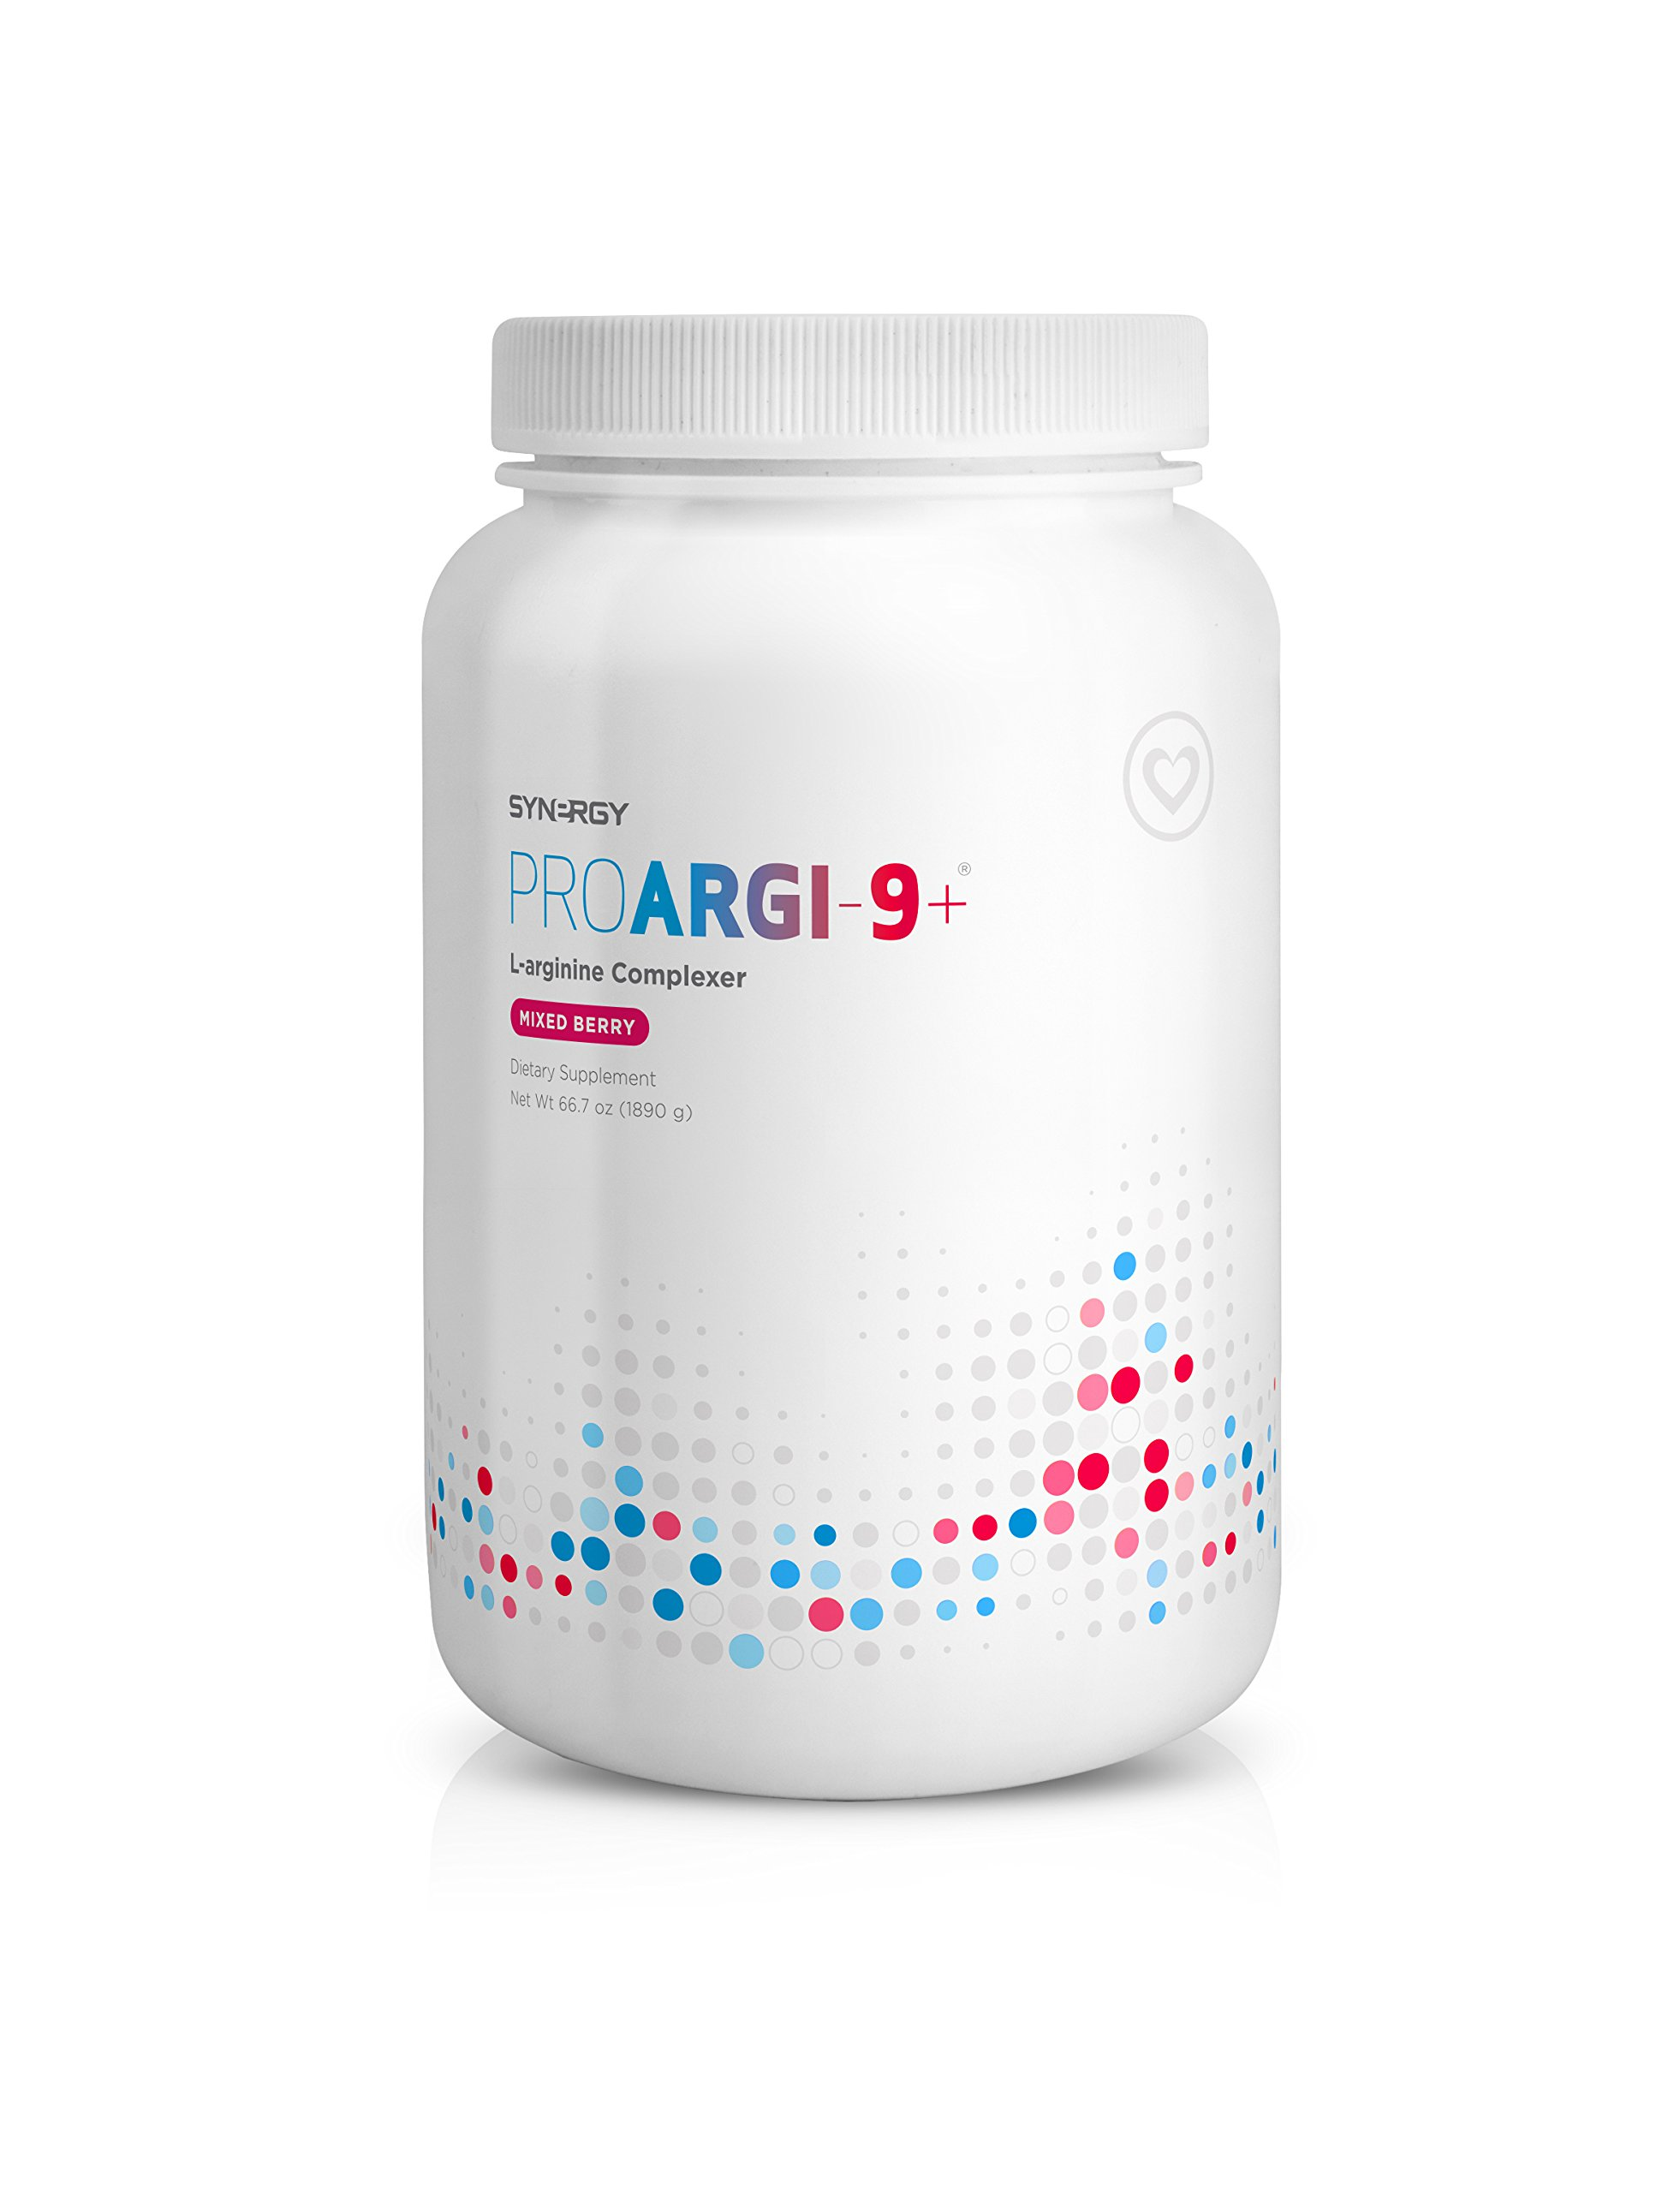 Proargi9 Plus L-arginine Complexer Jumbo Jar 66.6 Oz Mixed Berry by Synergy